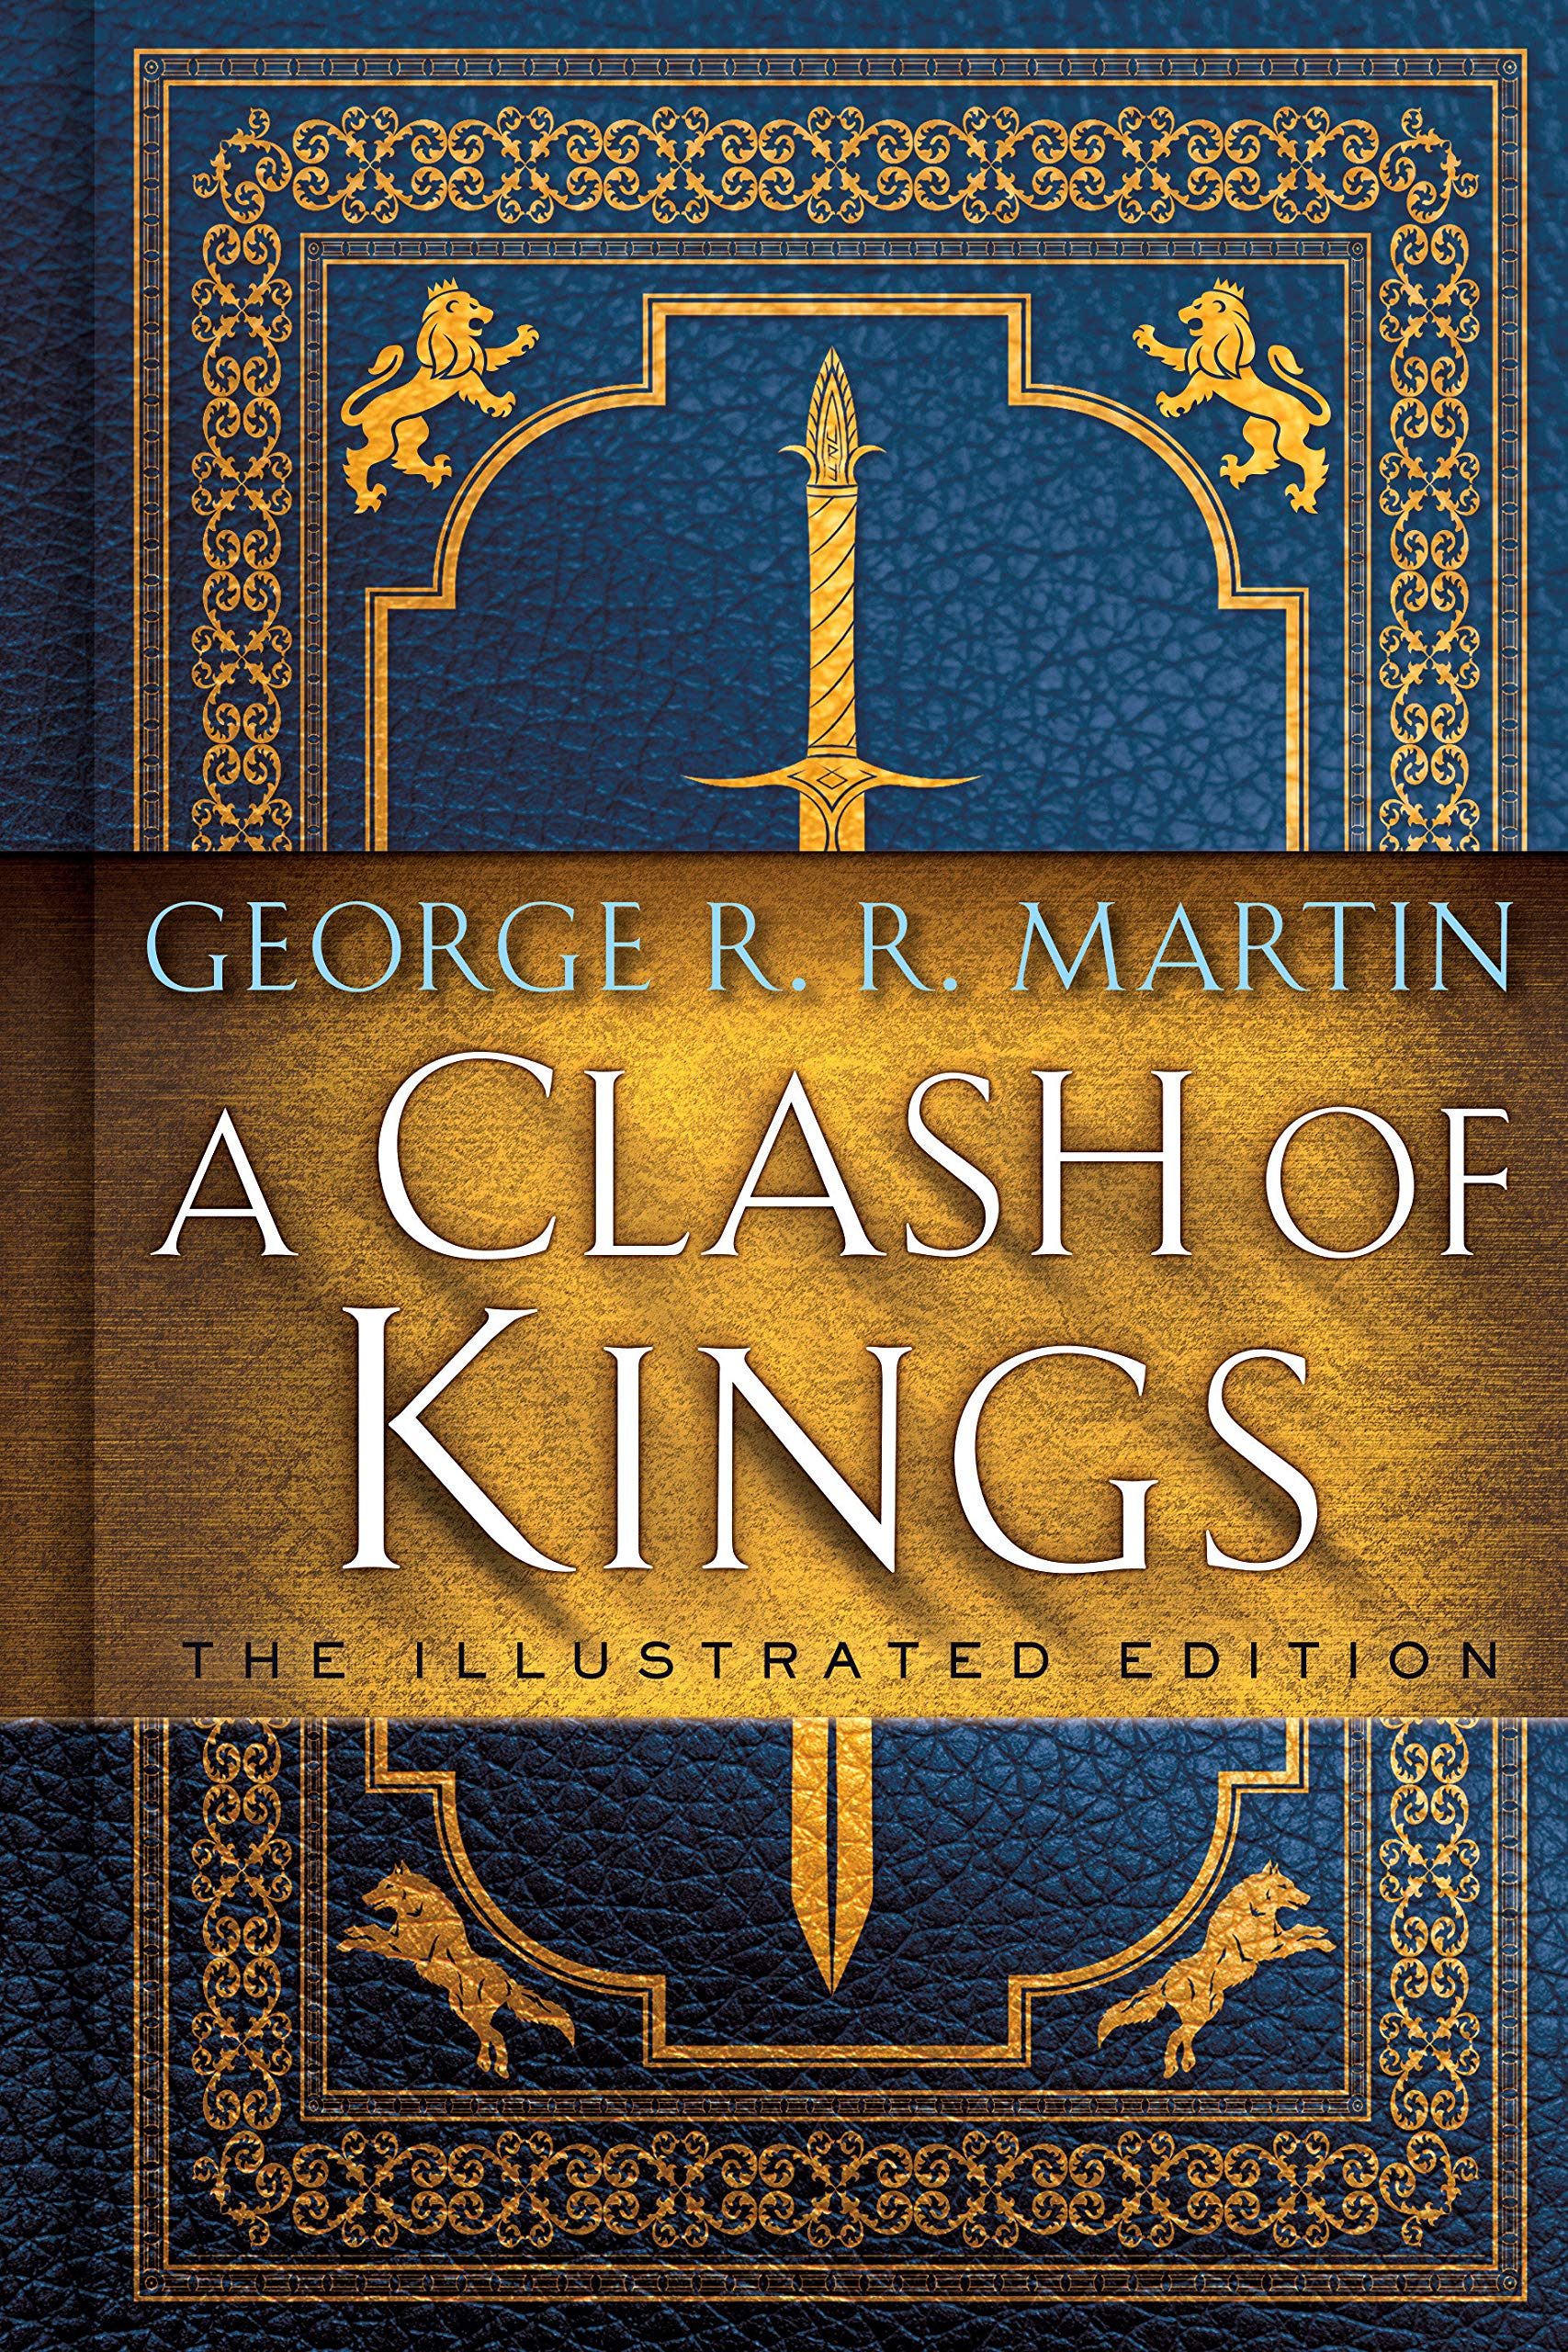 A Clash of Kings: The Illustrated Edition: A Song of Ice and Fire: Book Two (A Song of Ice and Fire Illustrated Edition) by Bantam